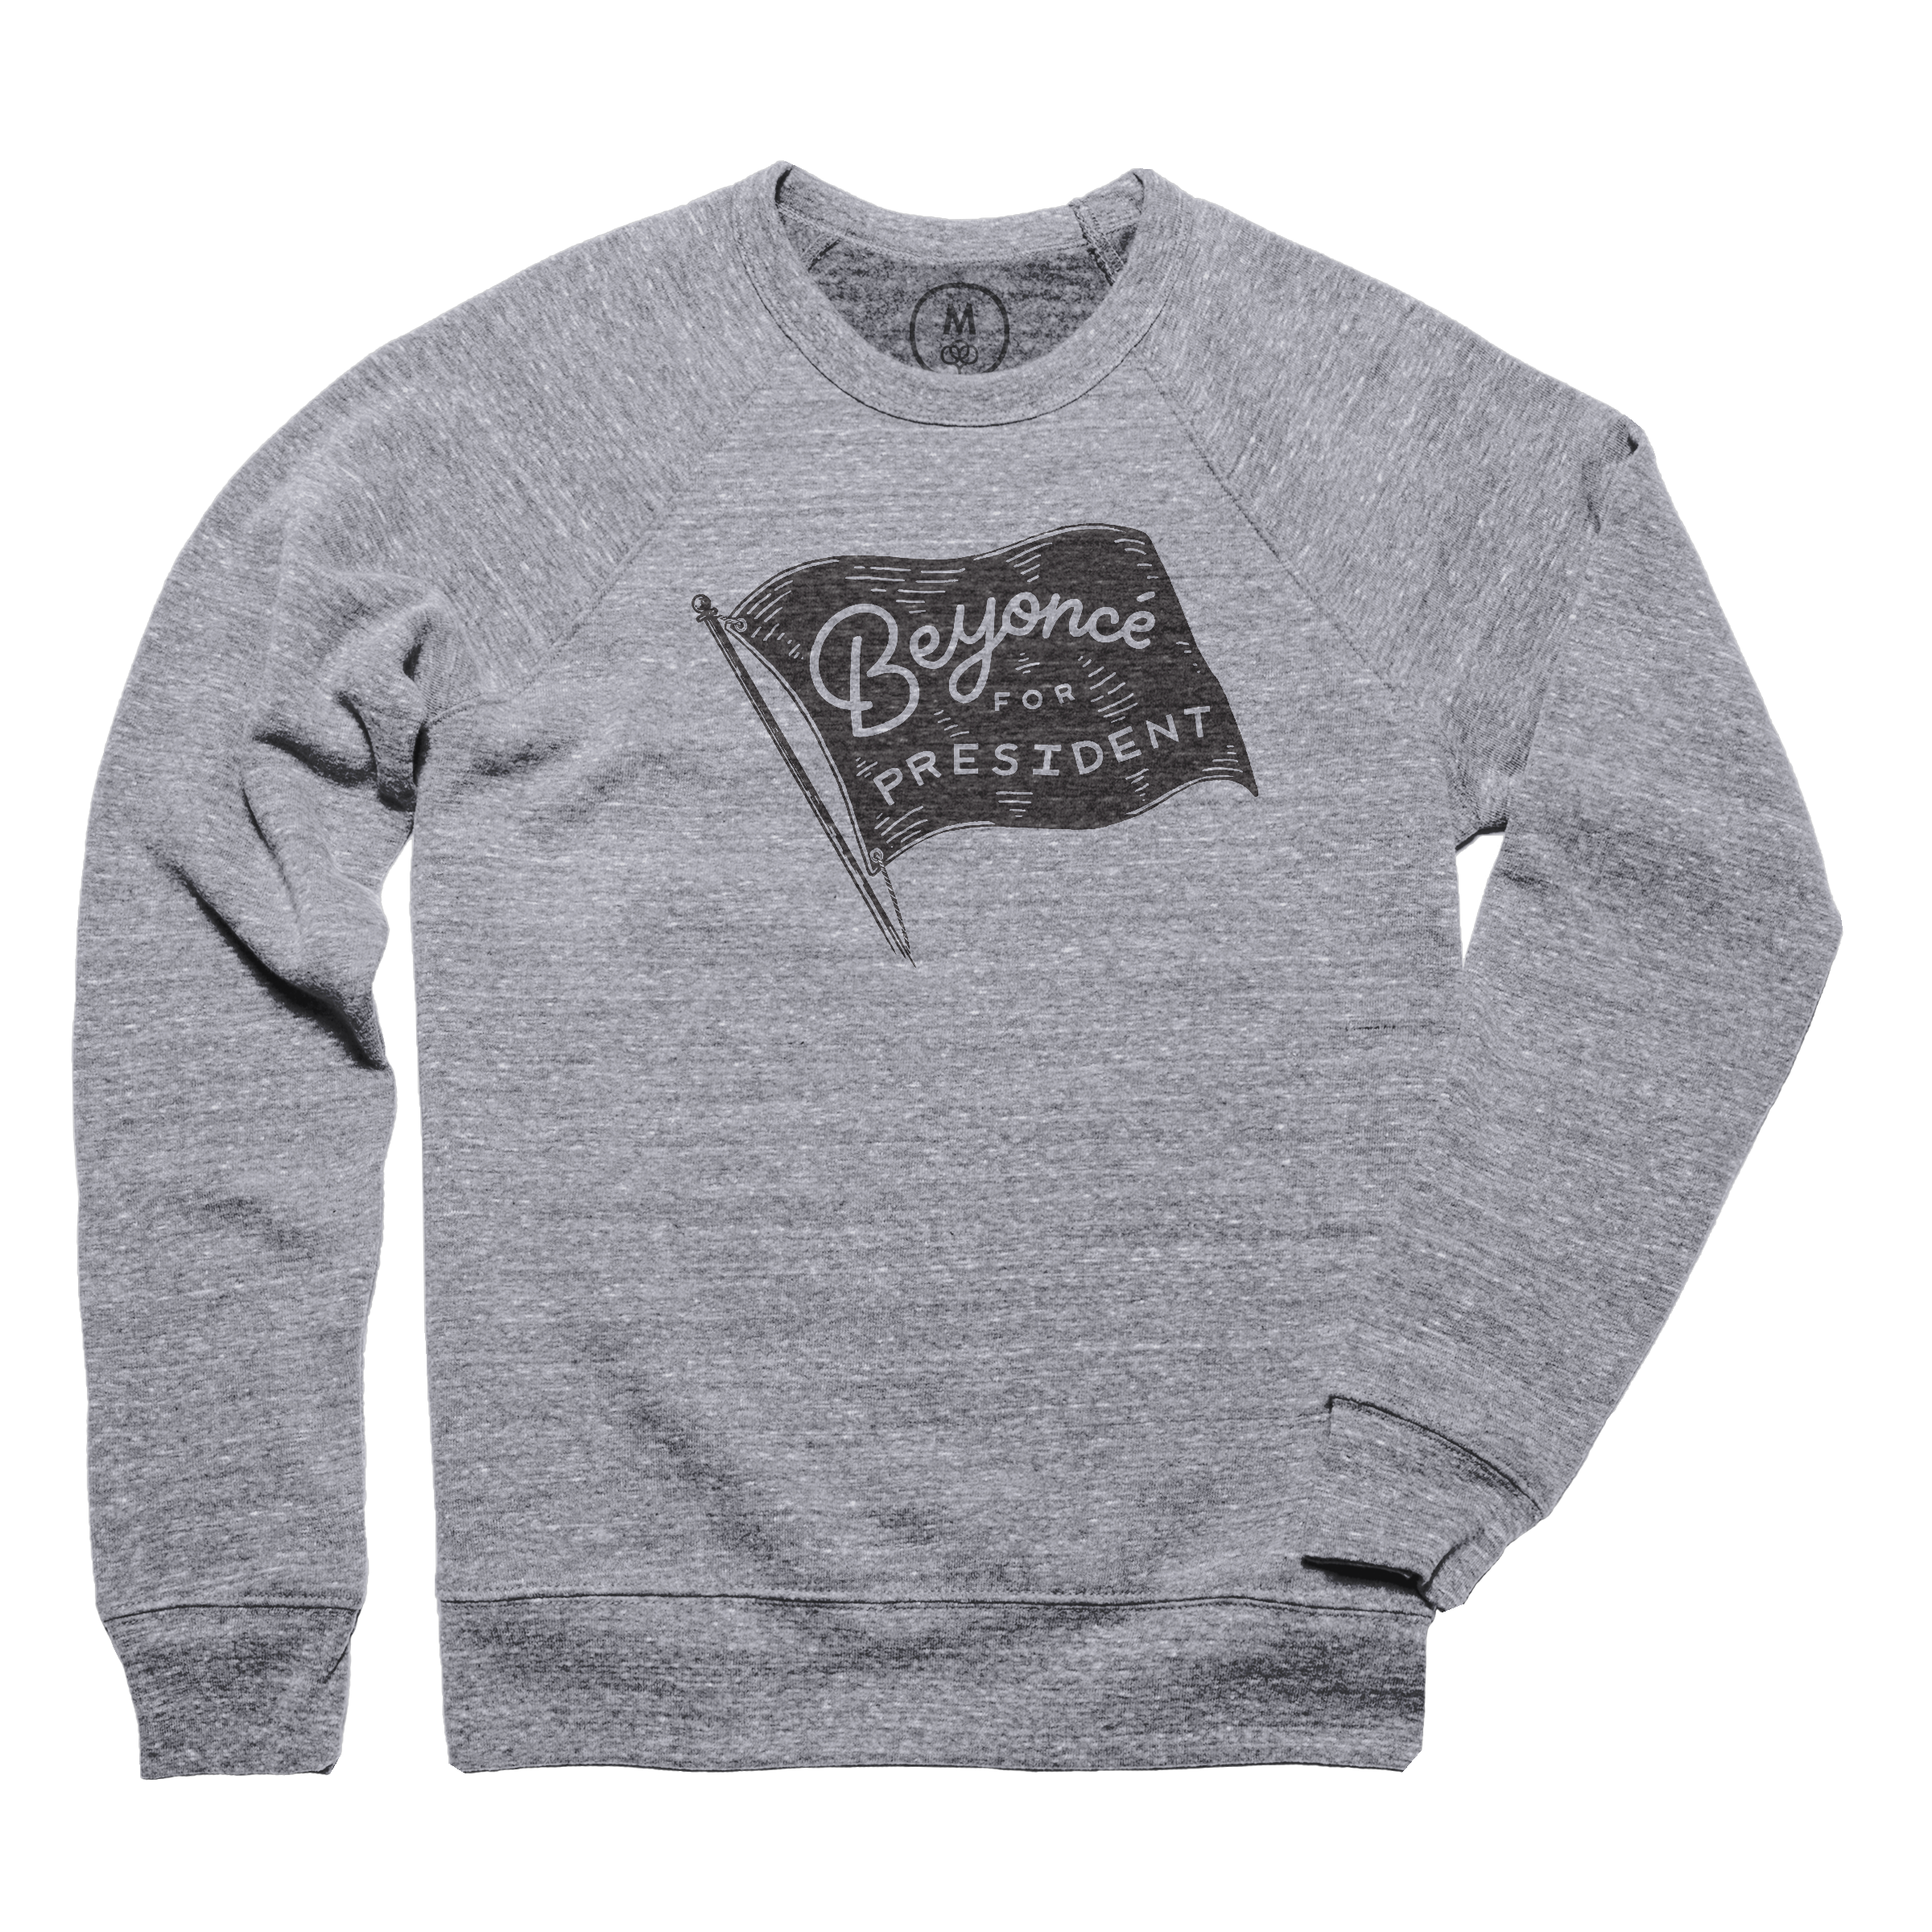 Beyonce 2016 Pullover Crewneck